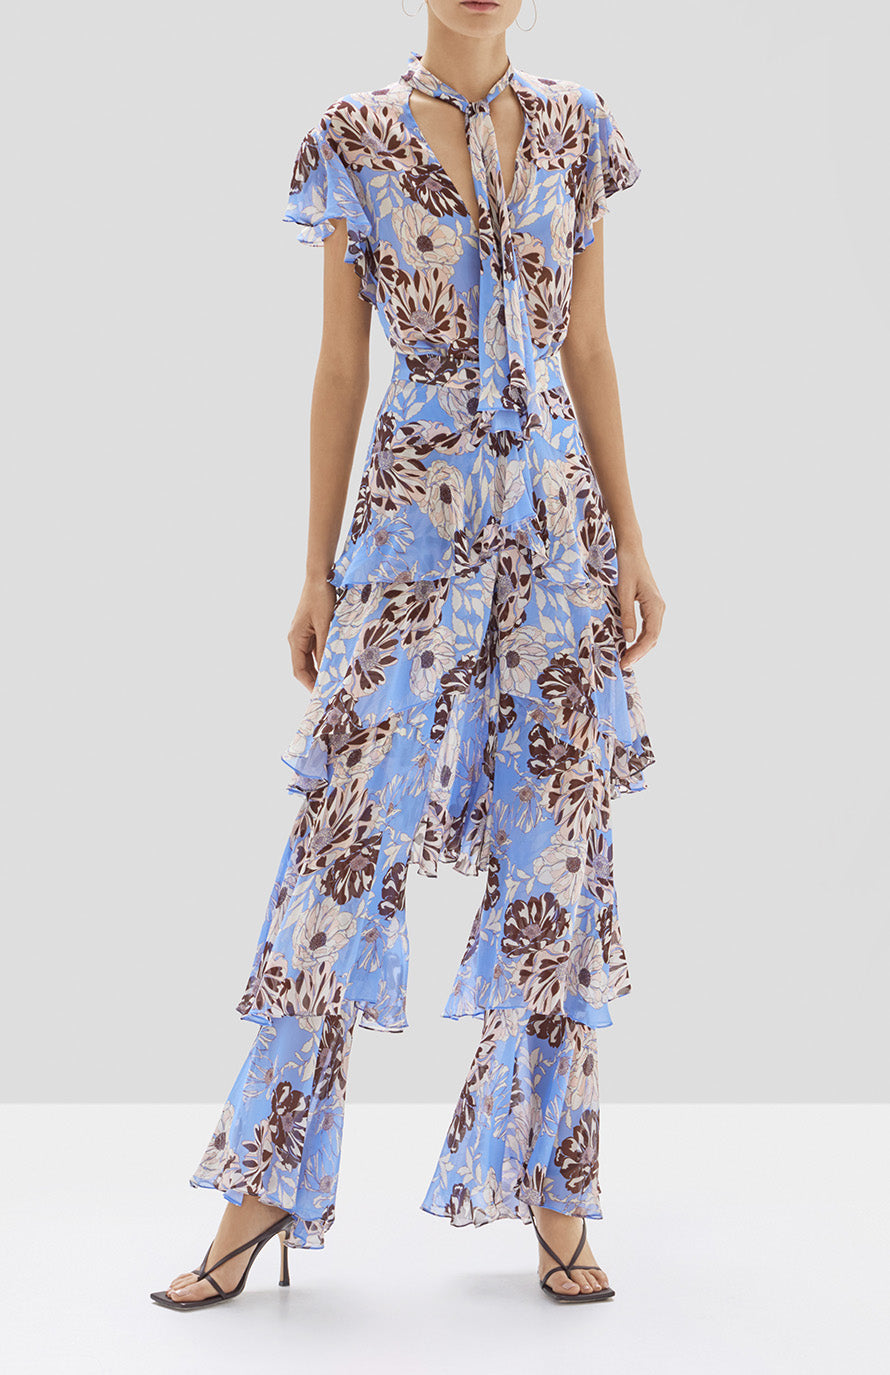 Alexis Dessie Top and Elyria Pant in Blue Floral from Pre Fall 2020 Collection - Rear View